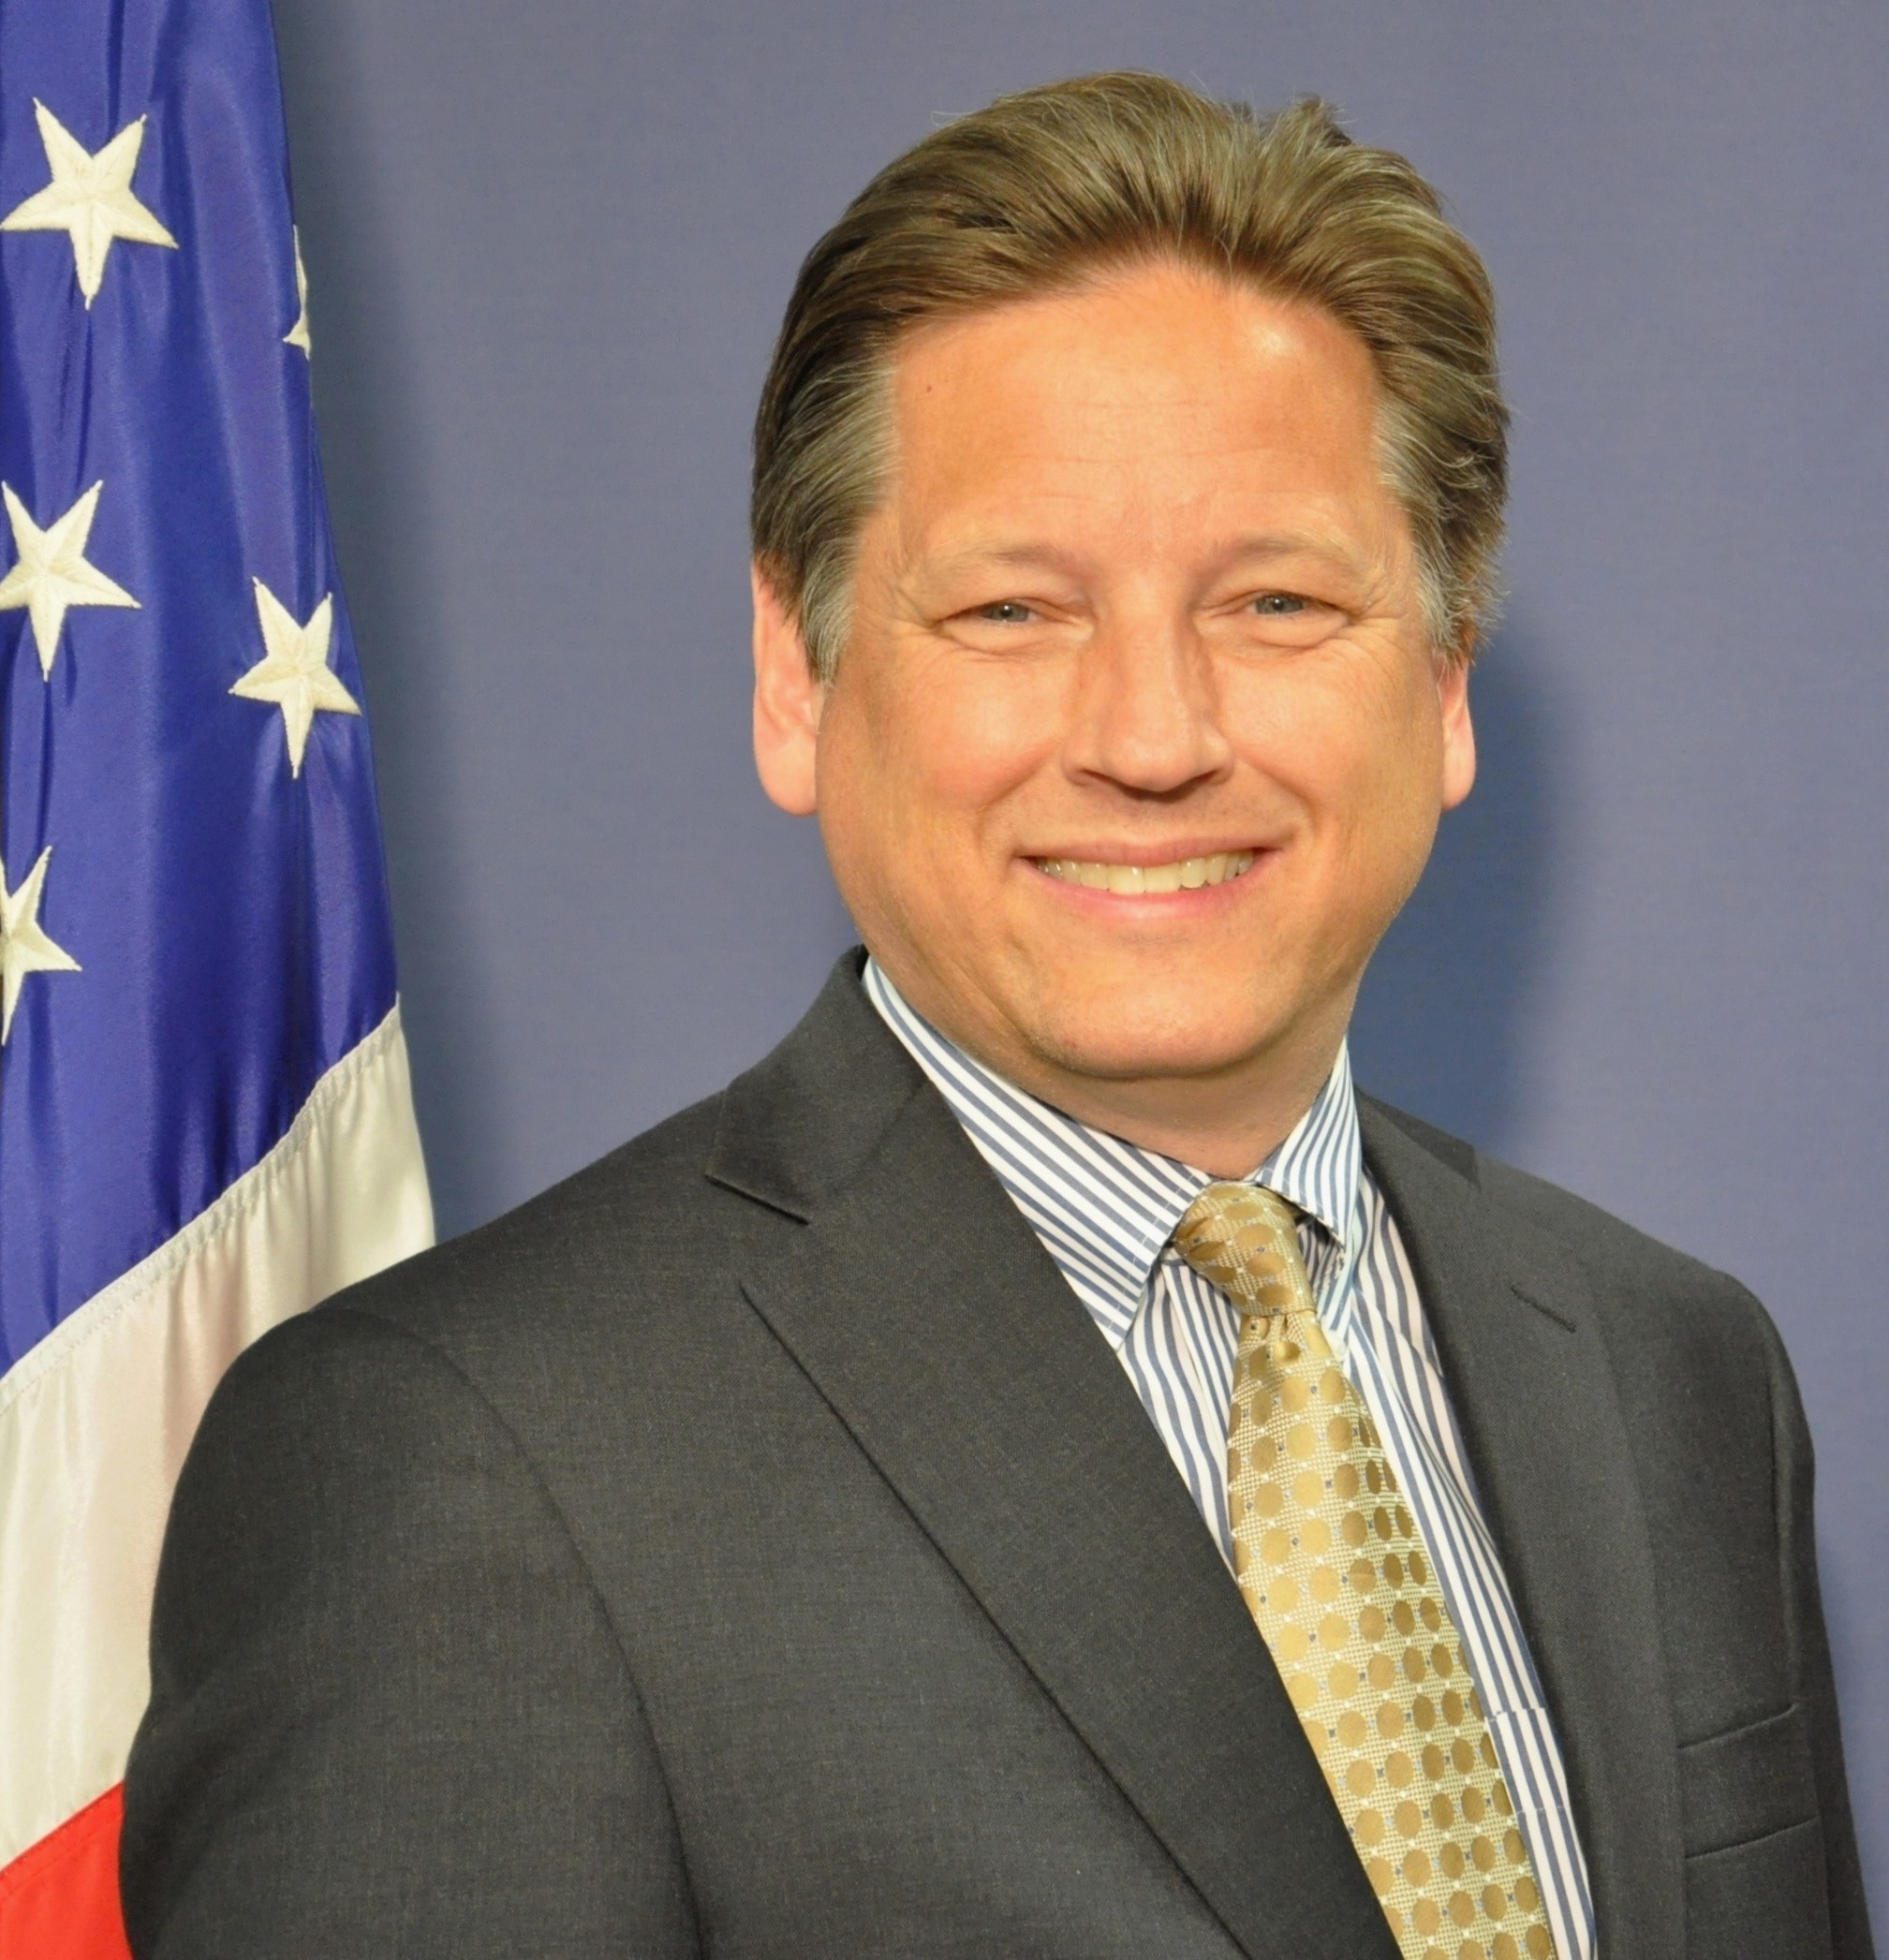 Acting U.S. Attorney Phillip Talbert